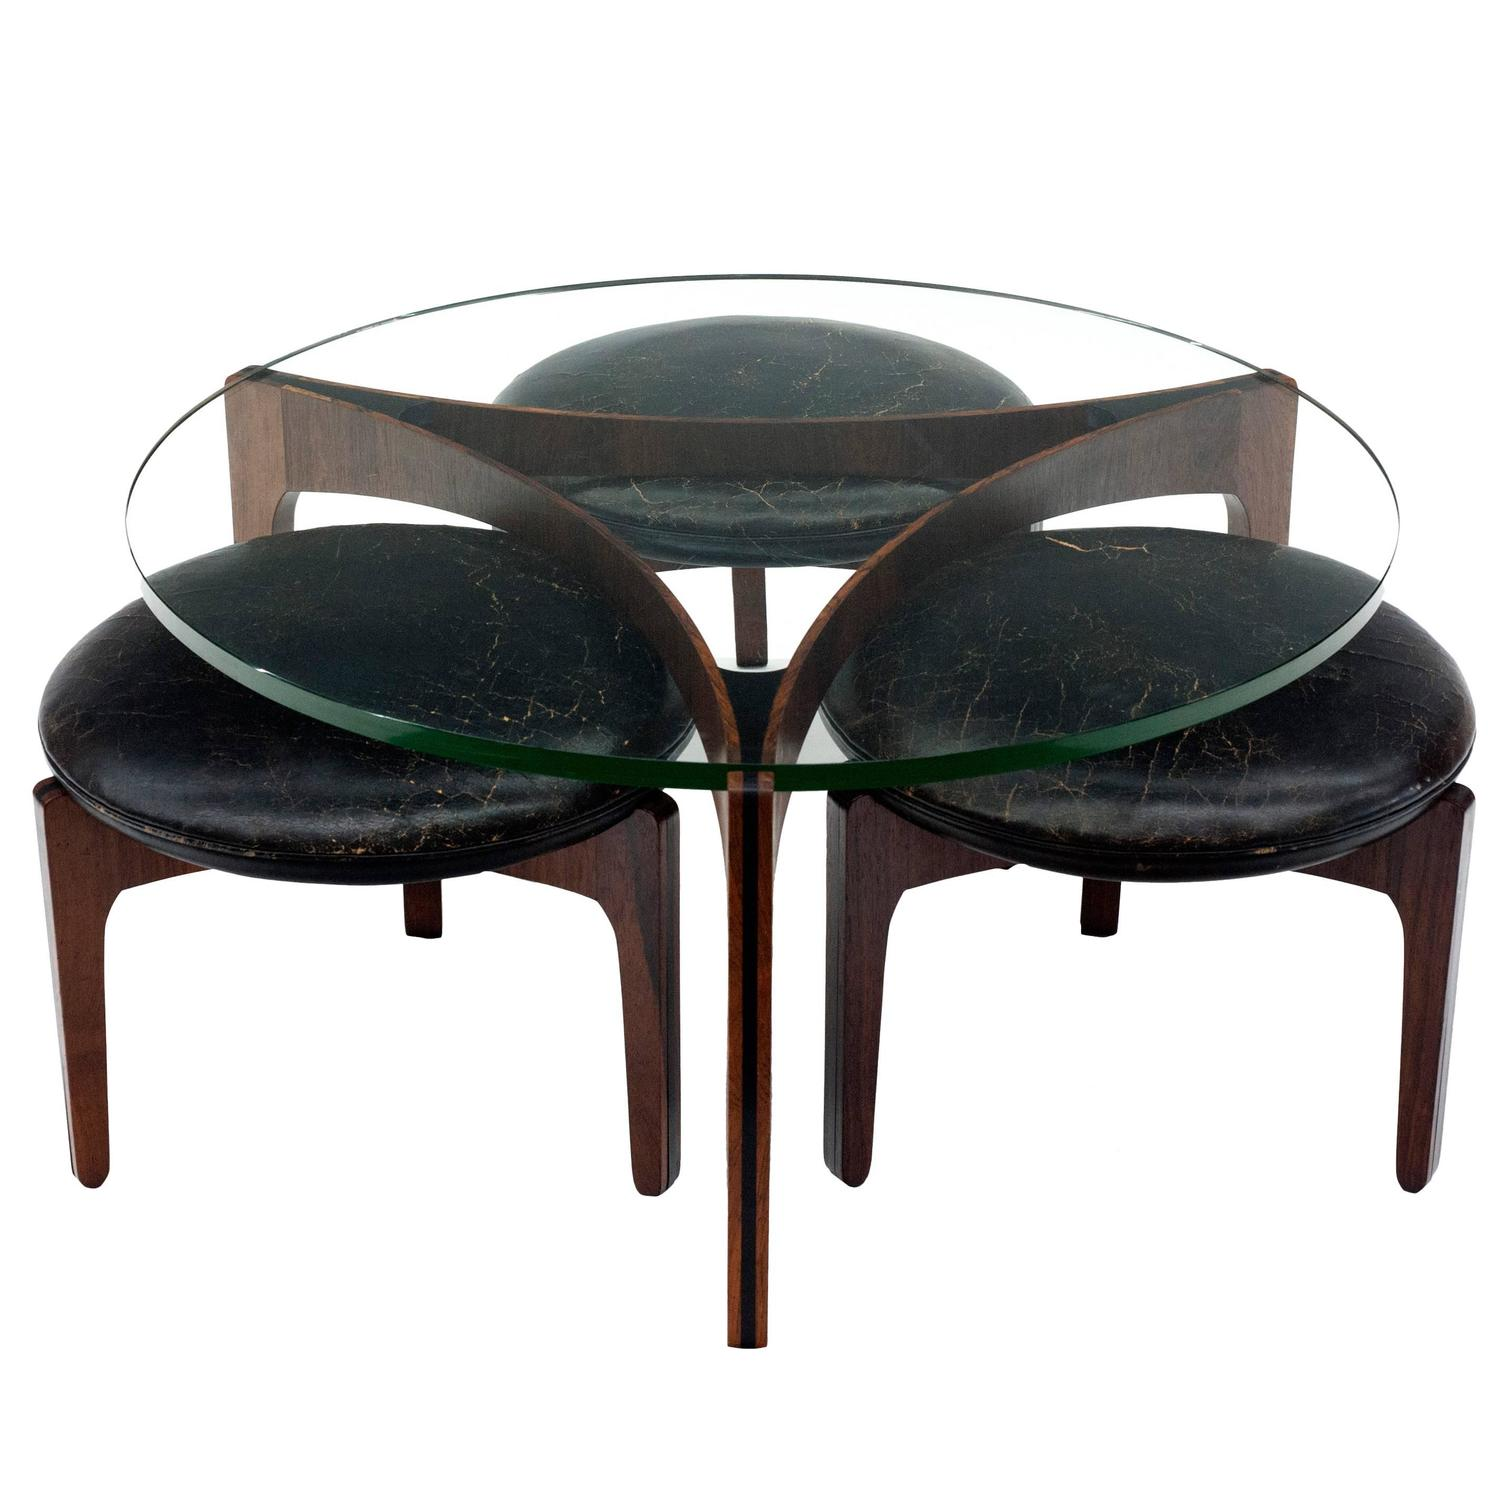 Danish Rosewood Glass Coffee Table And Three Leather Stools By Sven Ellekaer 1962 For Sale At